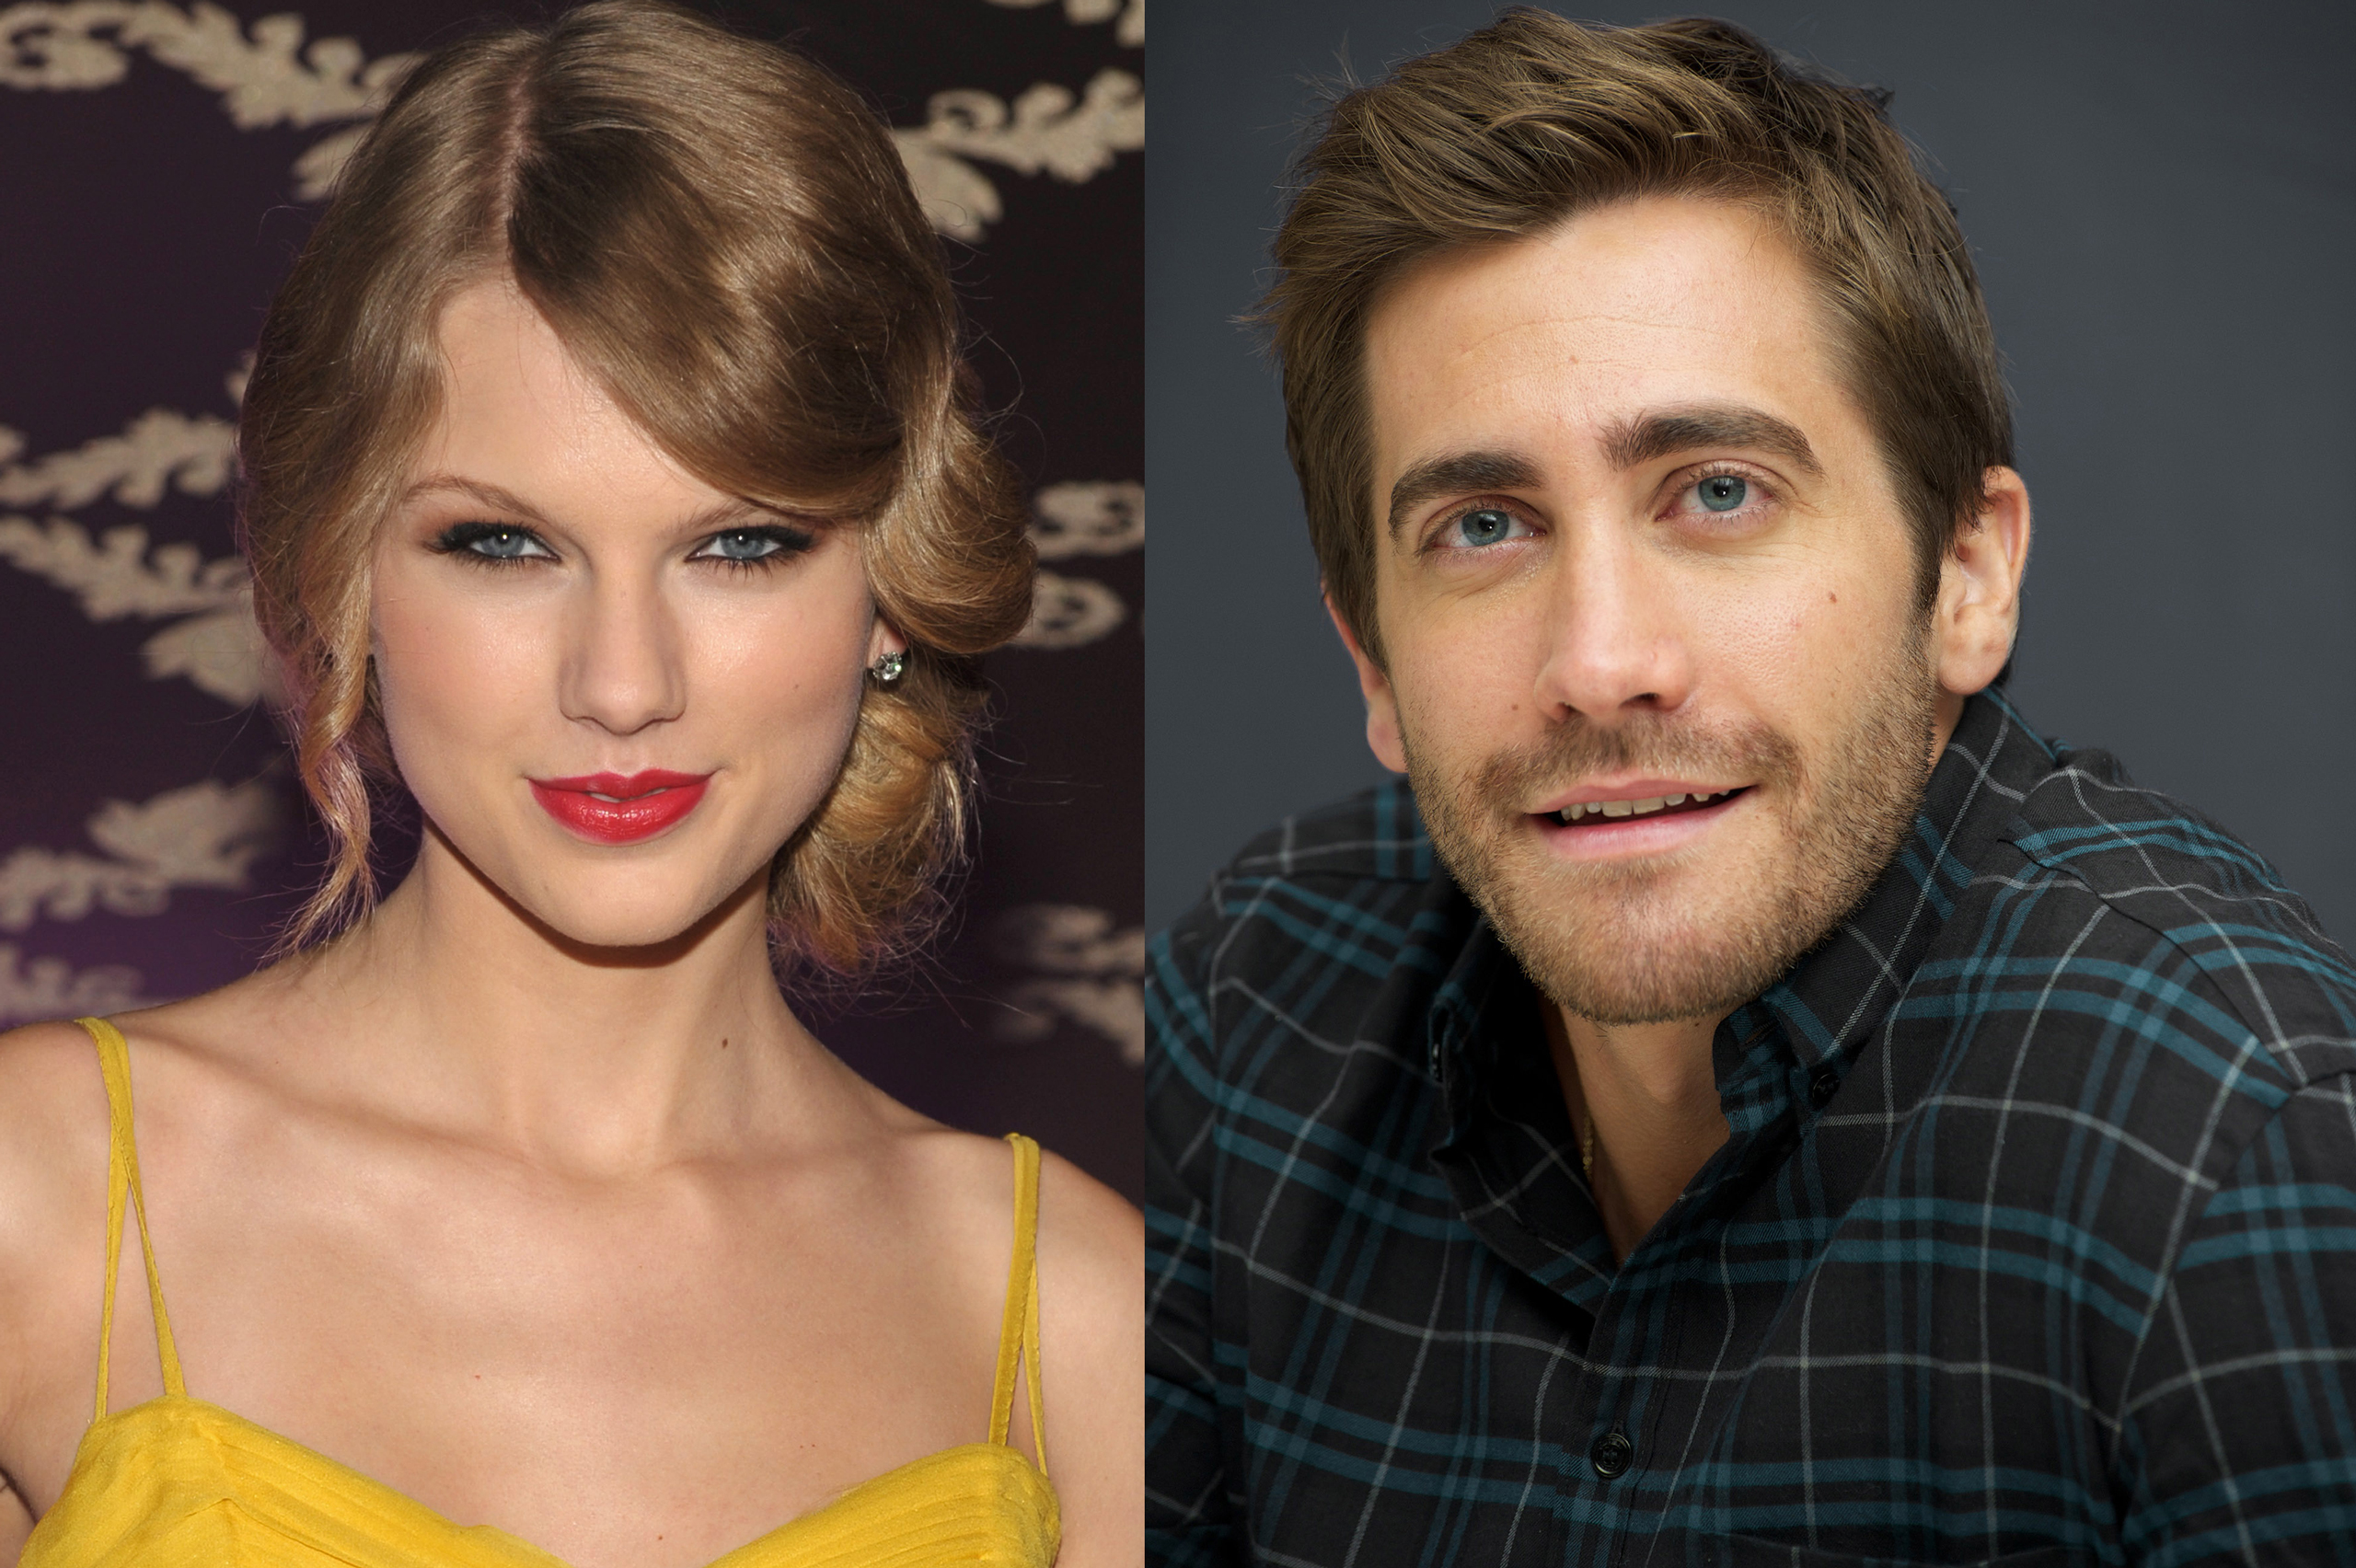 Taylor Swift attends the Country Music Hall Of Fame Museum's  All For The Hall  in Los Angeles on Sept. 23, 2010; Jake Gyllenhaal at the  Love And Other Drugs  Press Conference in New York on Nov. 6, 2010.